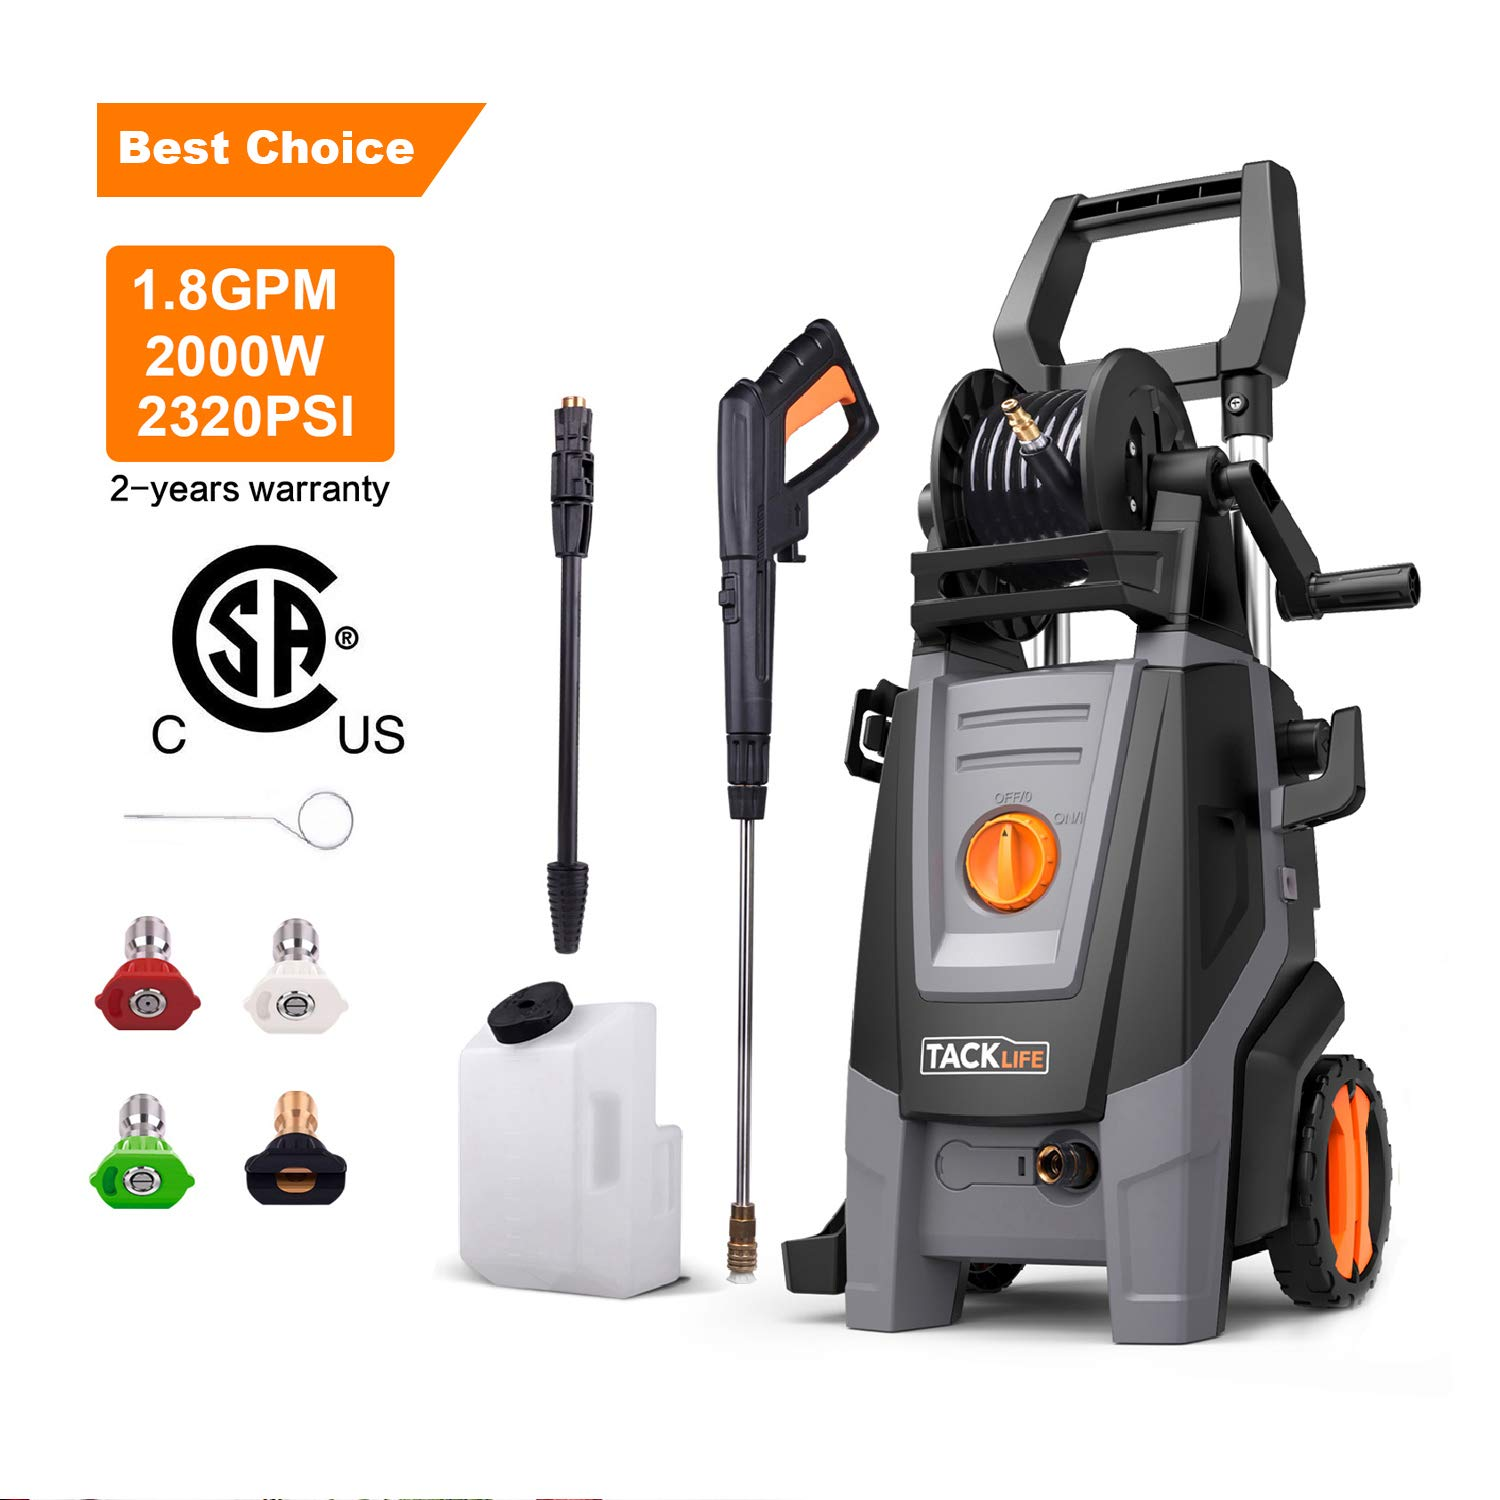 TACKLIFE Pressure Washer, 1.8 GPM 2000W 2320 PSI Full Copper Motor High Efficiency Electric Power Washer, Pressurized Hose Reel, Detergent Tank and Rotating Nozzle Gun, Car Washing Machine